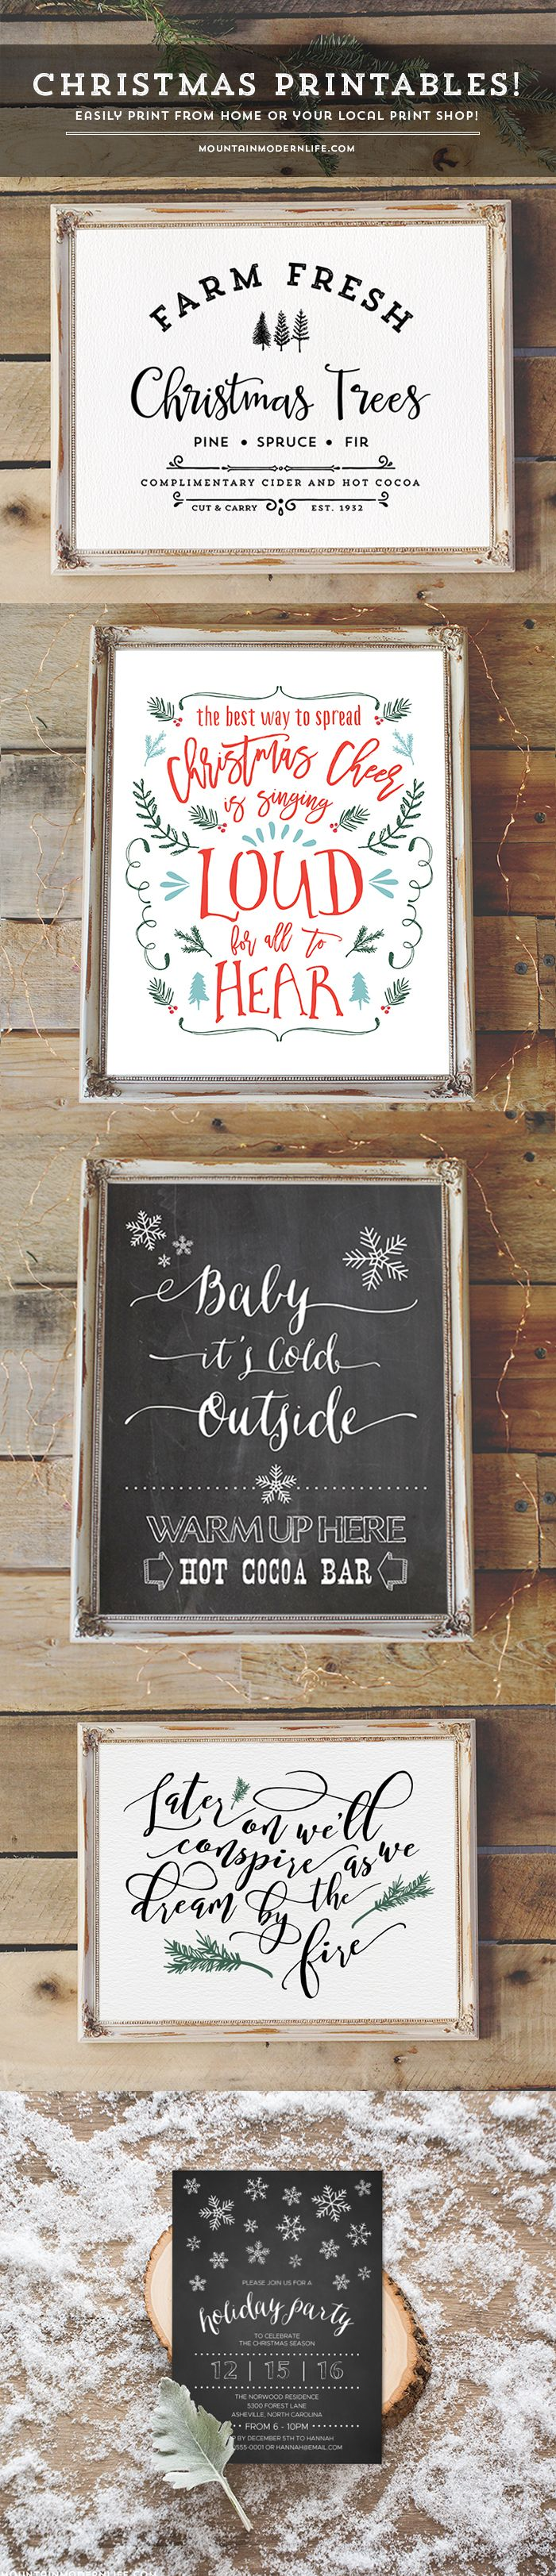 Best Quotes for christmas ideas on Pinterest